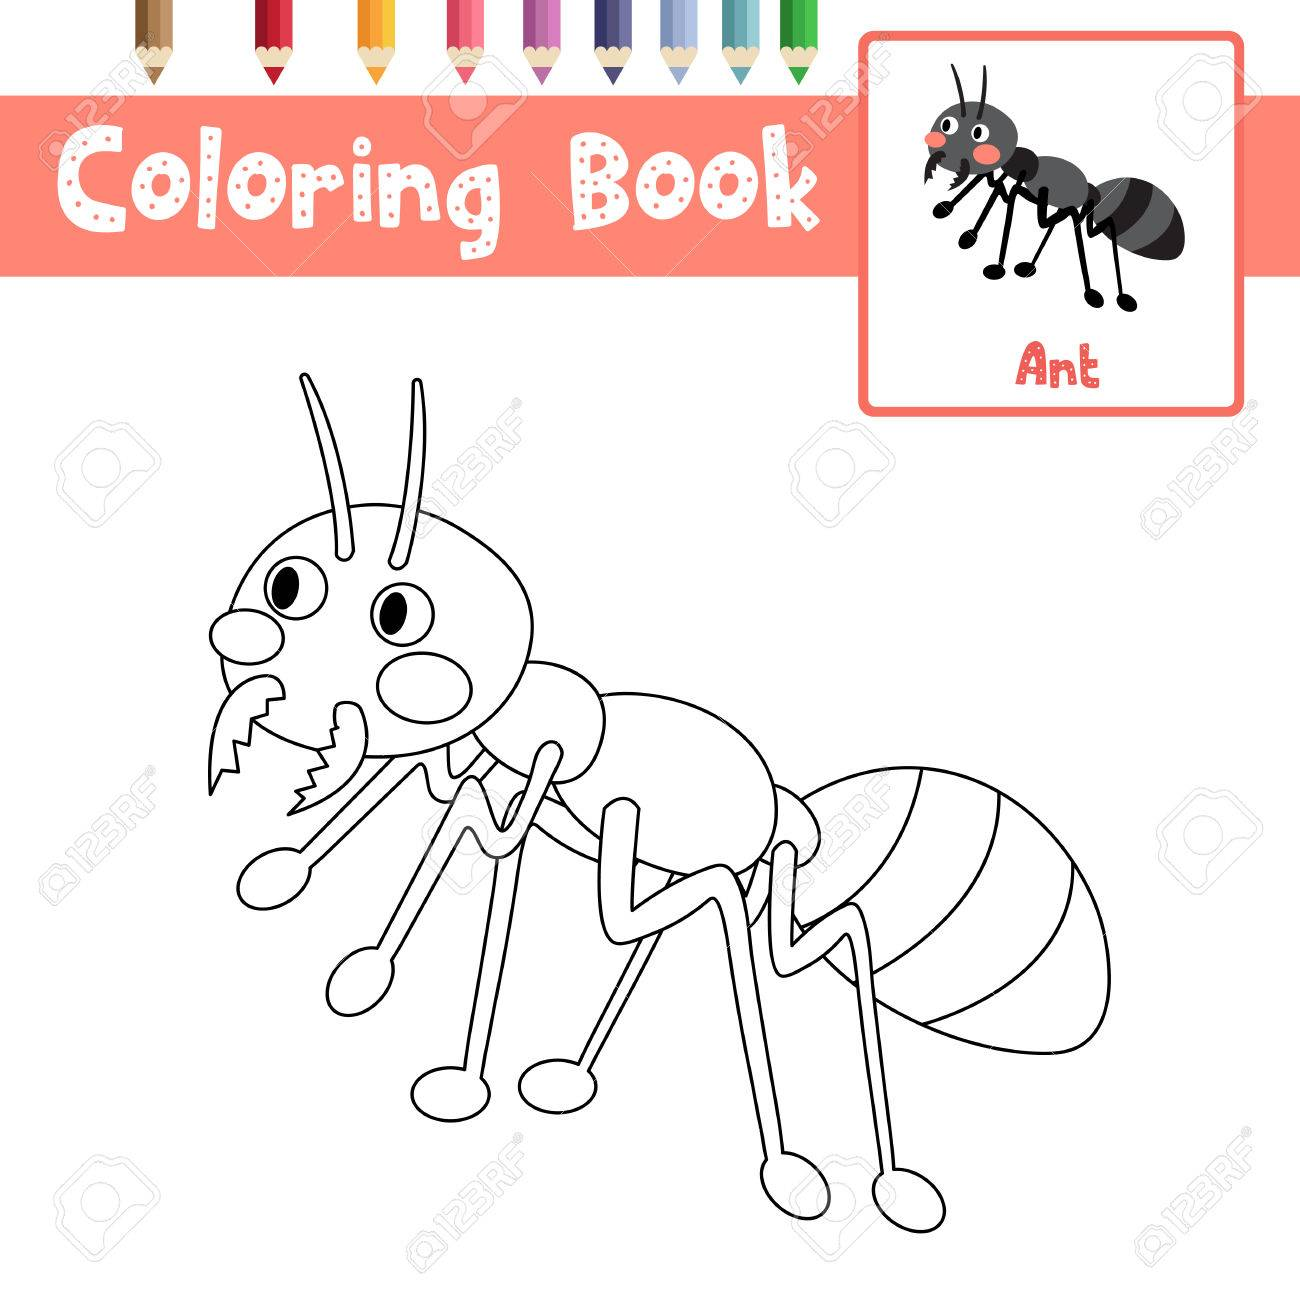 Coloring Page Of Black Ants Animals For Preschool Kids Activity ...